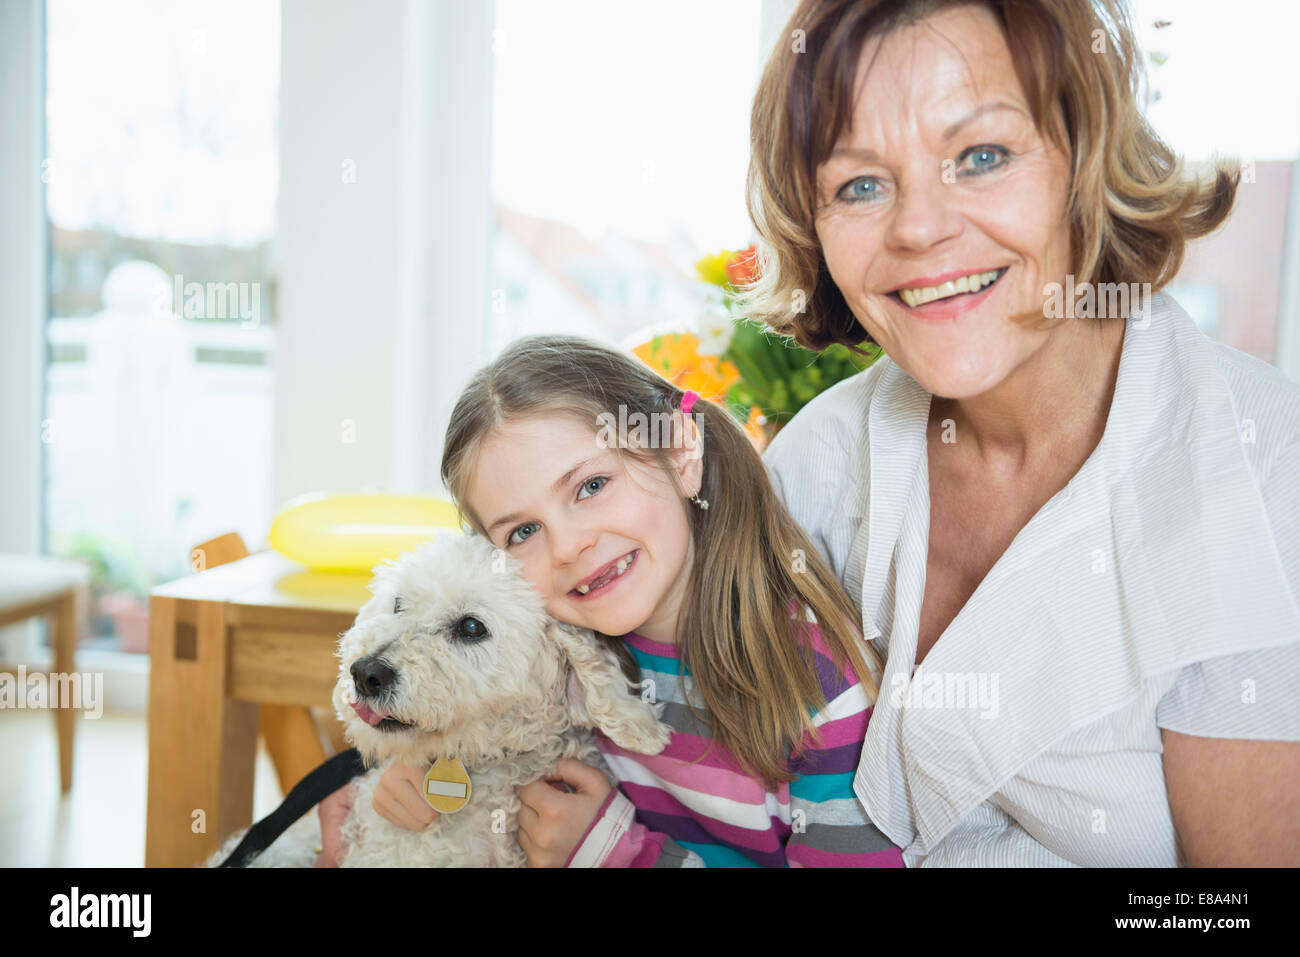 Portrait of grandmother and grandchild with dog in living room, smiling - Stock Image